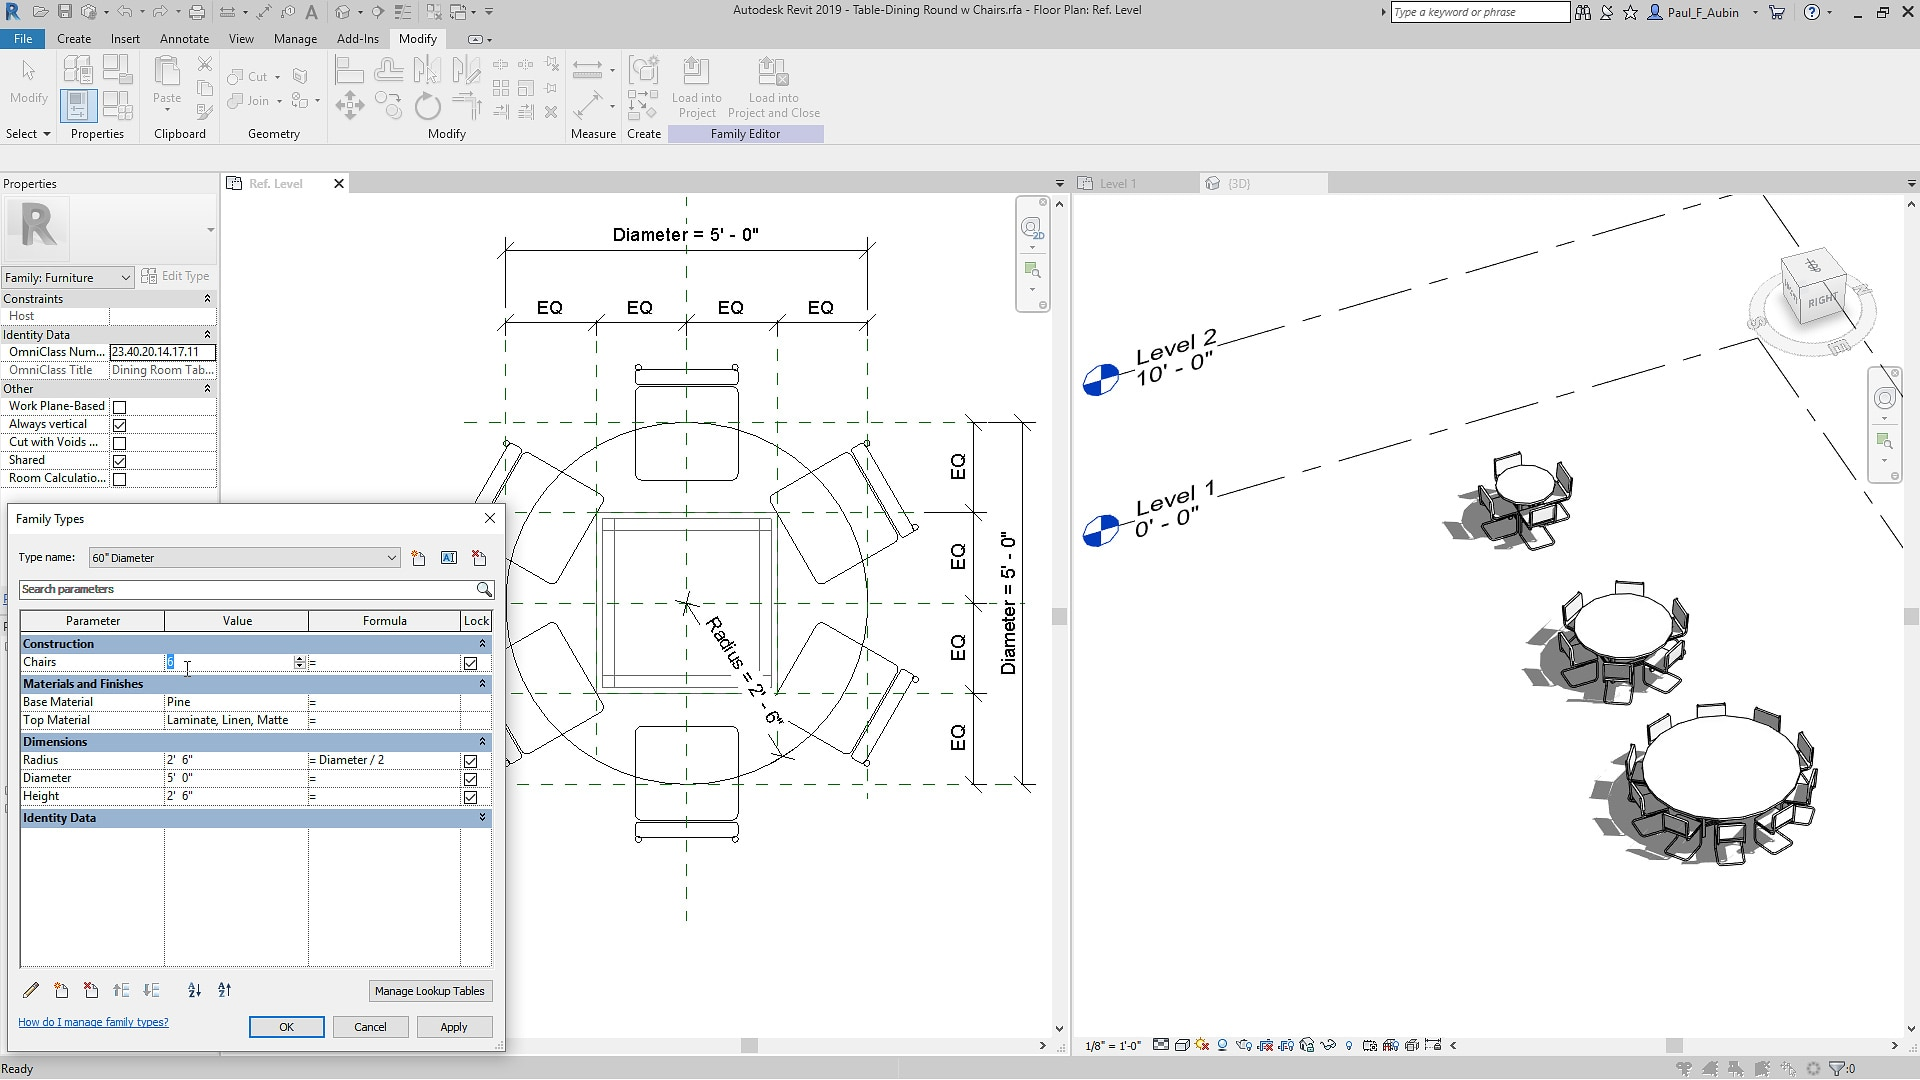 BIM Software Features | Revit 2019 | Autodesk